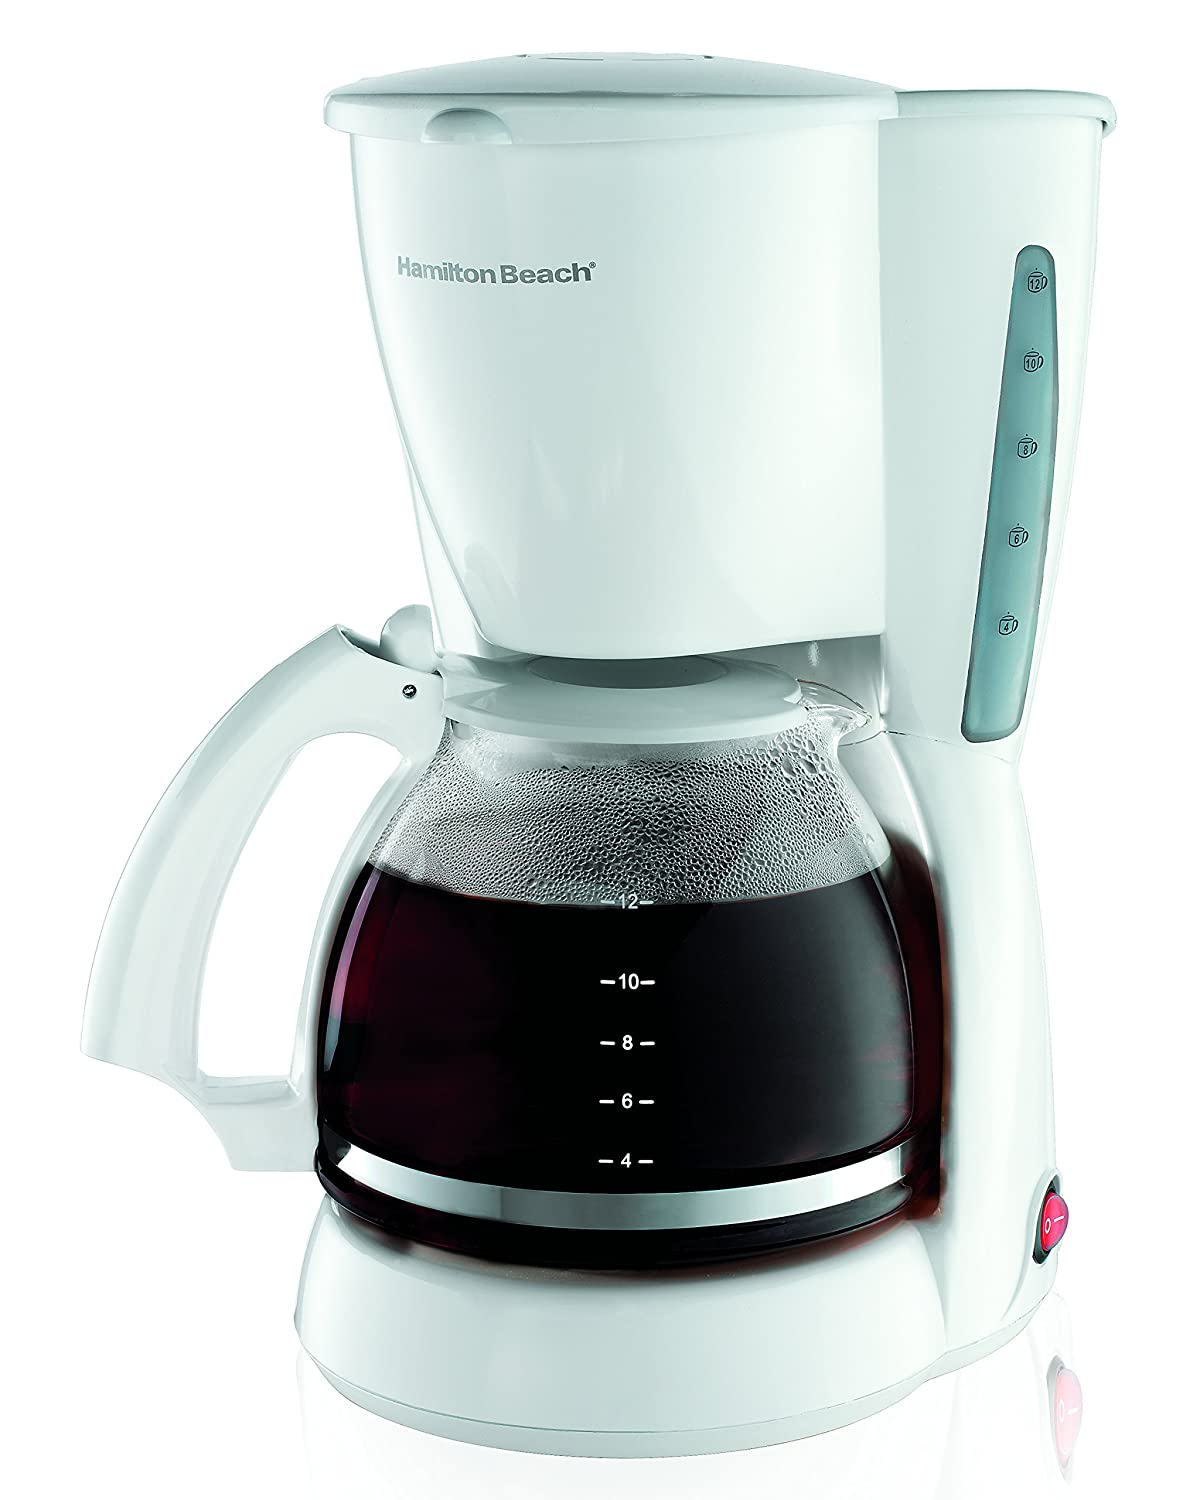 Hamilton Beach 49315 - Cafetera (Goteo, Color blanco, Café): Amazon.es: Hogar